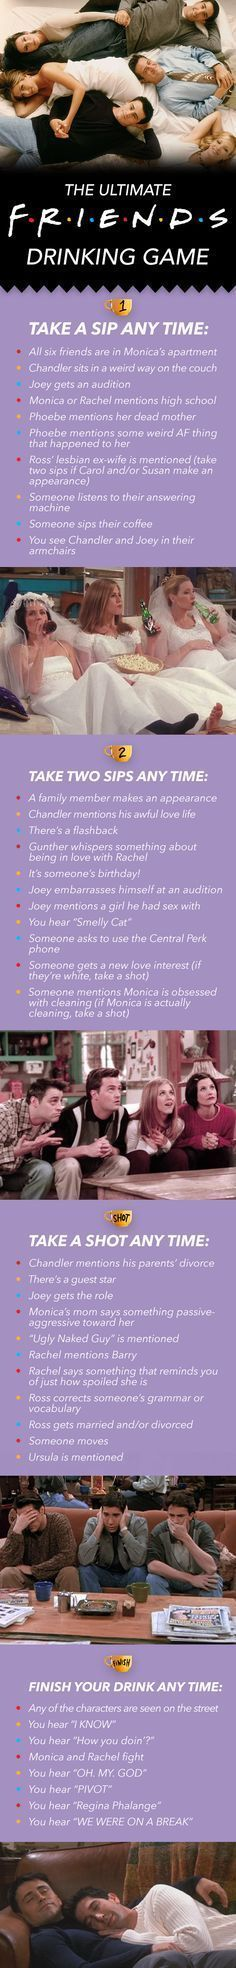 "The Ultimate ""Friends"" Drinking Game...must show Jenny! Lol"